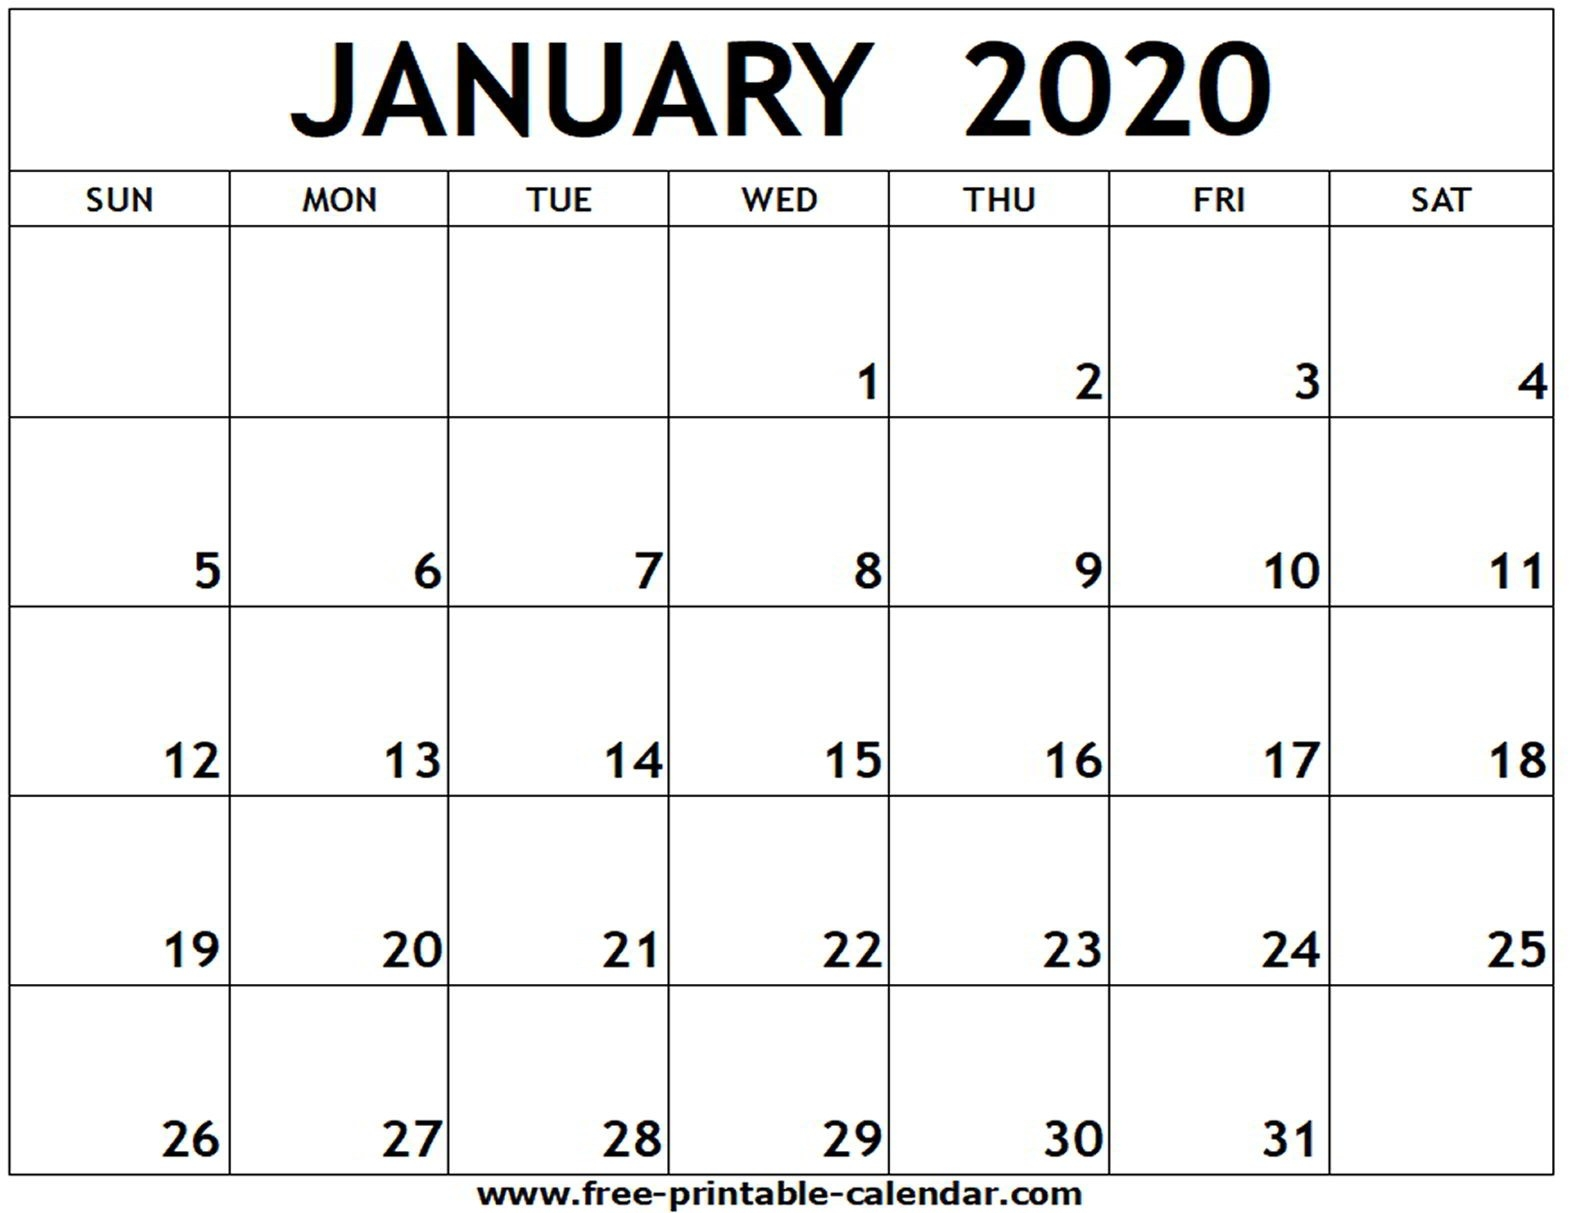 January 2020 Printable Calendar - Free-Printable-Calendar-Images Of January 2020 Calendar